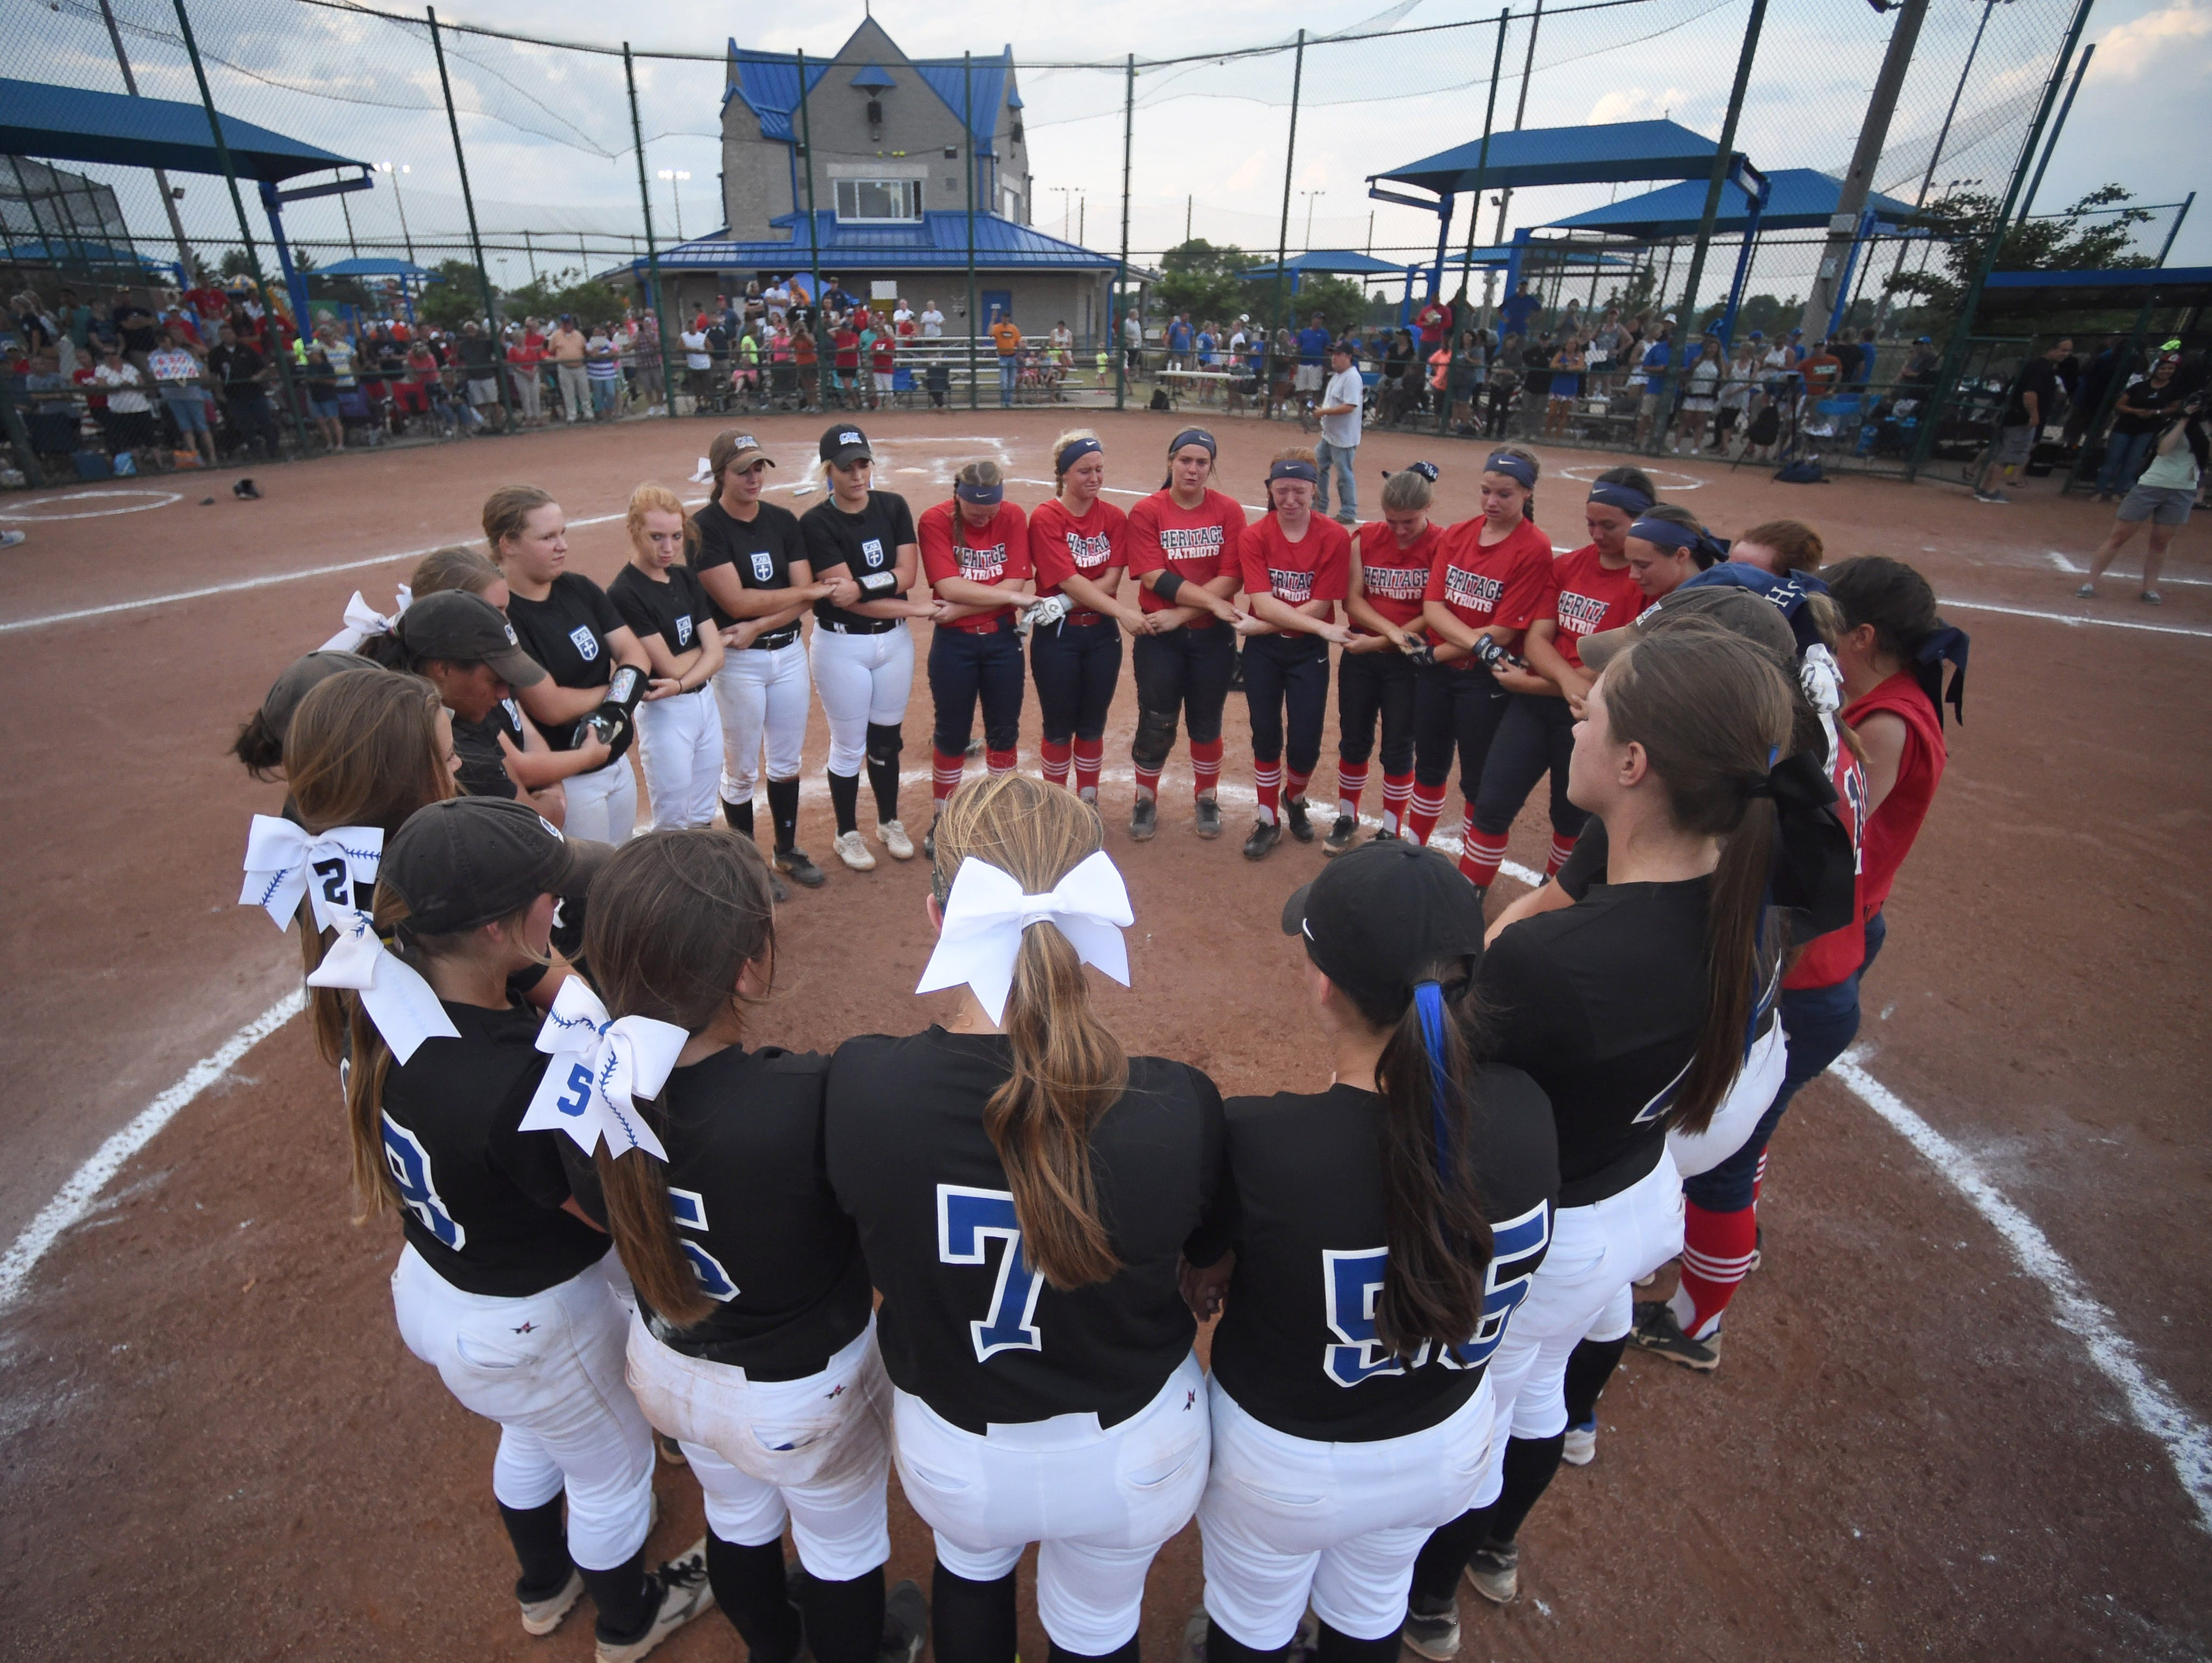 CAK and White House Heritage players pray together in a circle after CAK's 4-0 victory in a Class AA state championship softball game at StarPlex Park in Murfreesboro during Spring Fling on Friday, May 27, 2016.